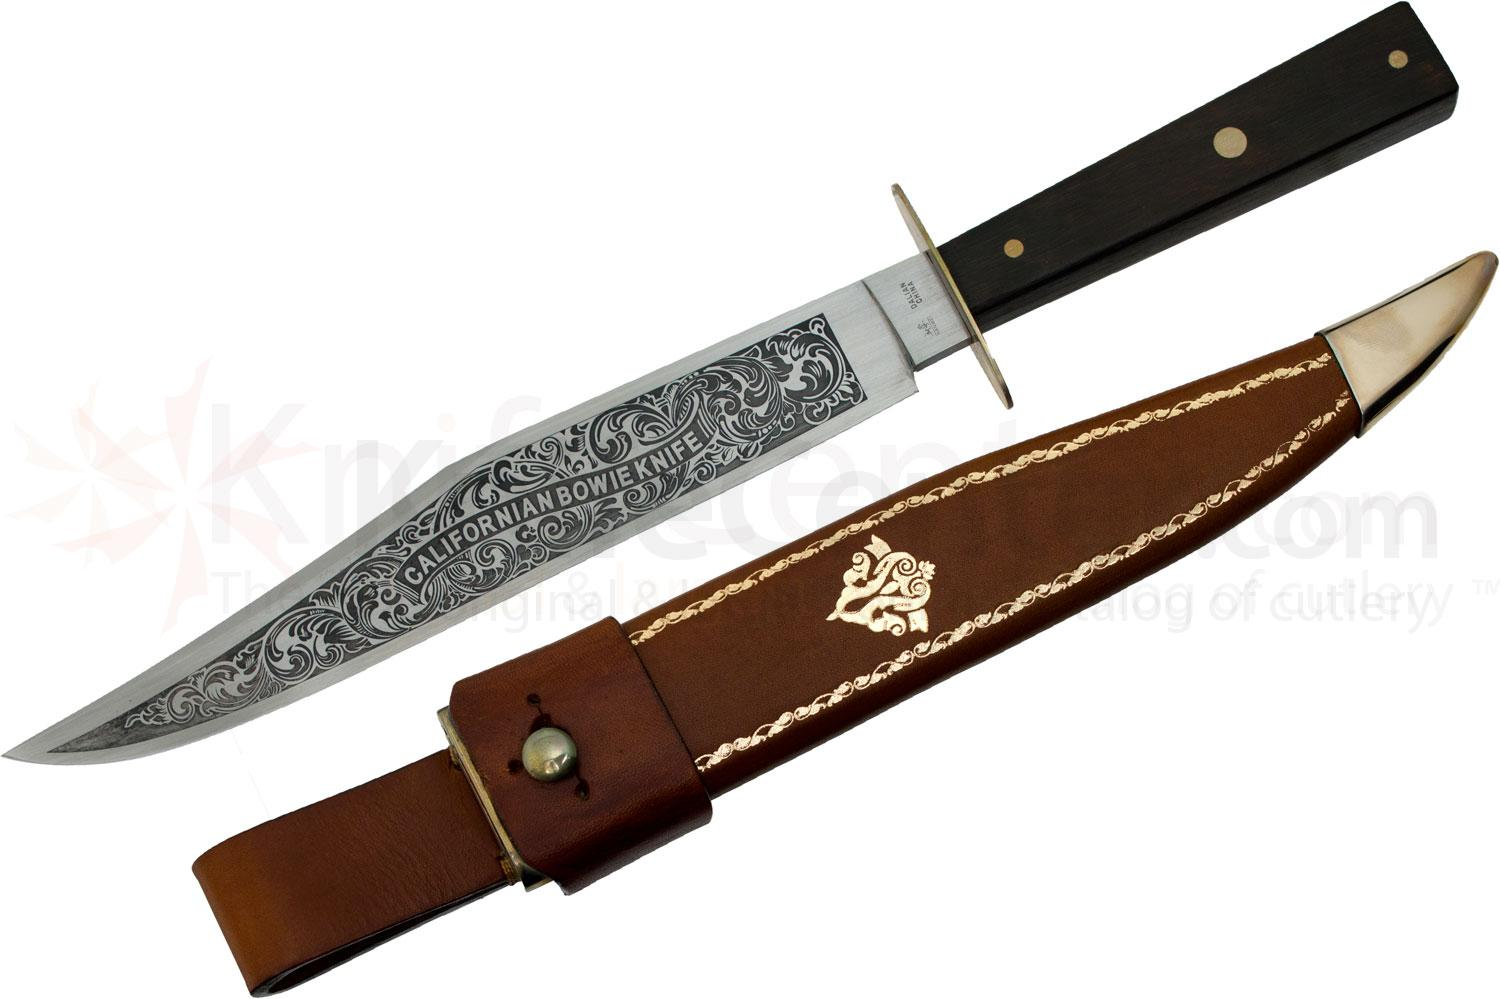 CAS Iberia Hanwei California Bowie Knife 8-5/8 inch Carbon Steel Blade, Hardwood Handle, Leather Sheath